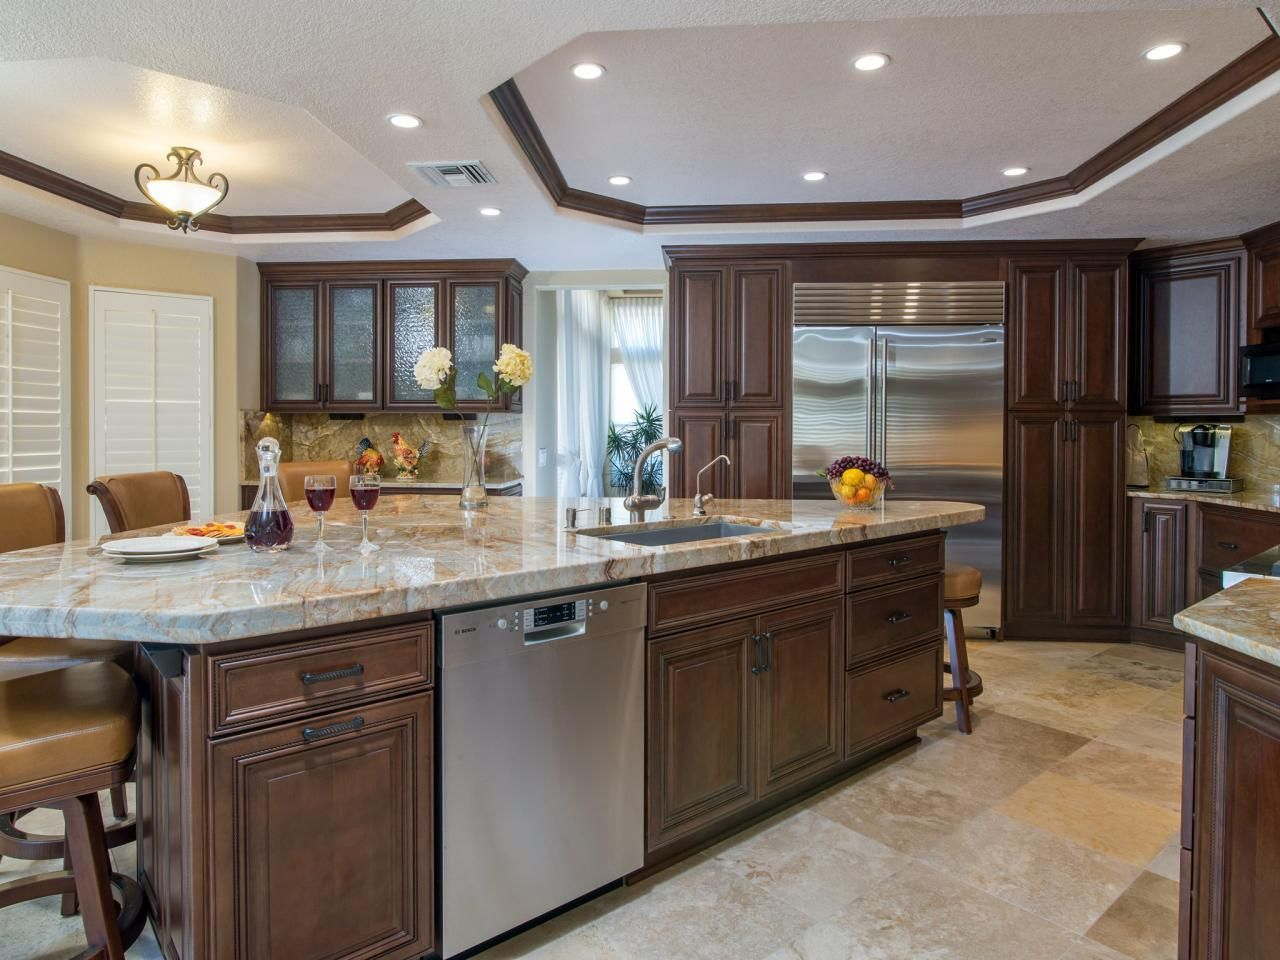 Ordinaire 100+ Approximate Cost Of Kitchen Remodel   Kitchen Remodel Ideas For Small  Kitchens Check More At ...